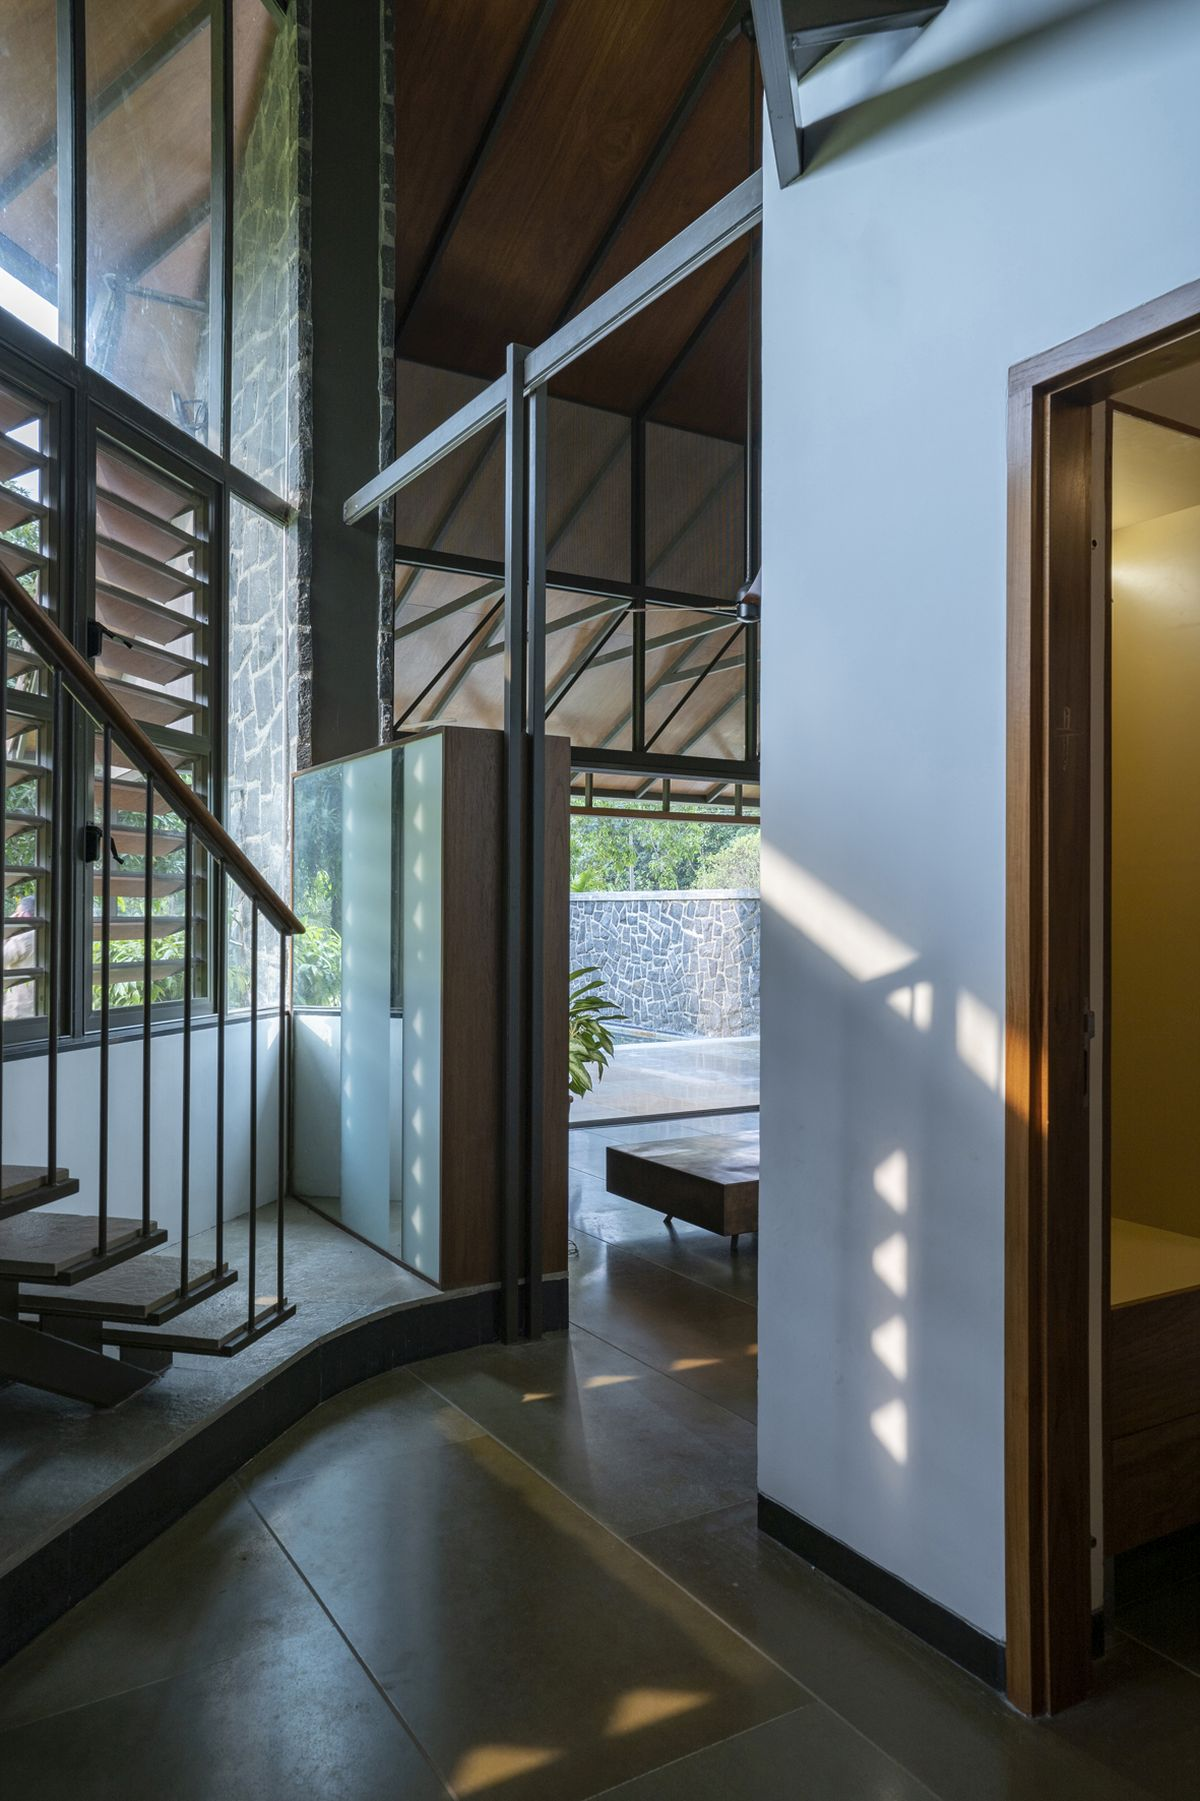 Dr Maani House 2020, at Koothattukulam, by RGB Architecture Studio 20